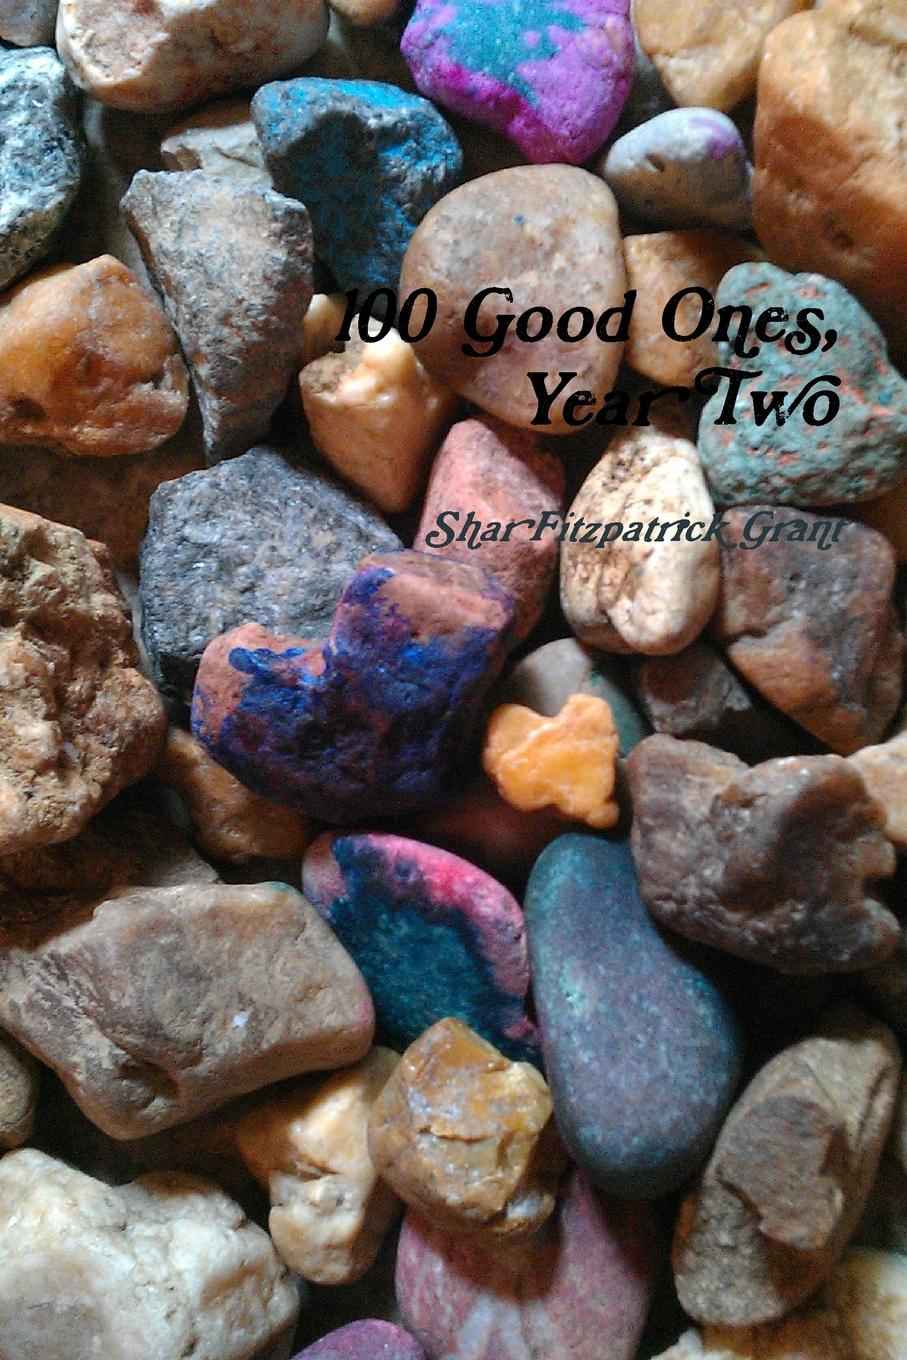 Shar Fitzpatrick Grant 100 Good Ones, Year Two